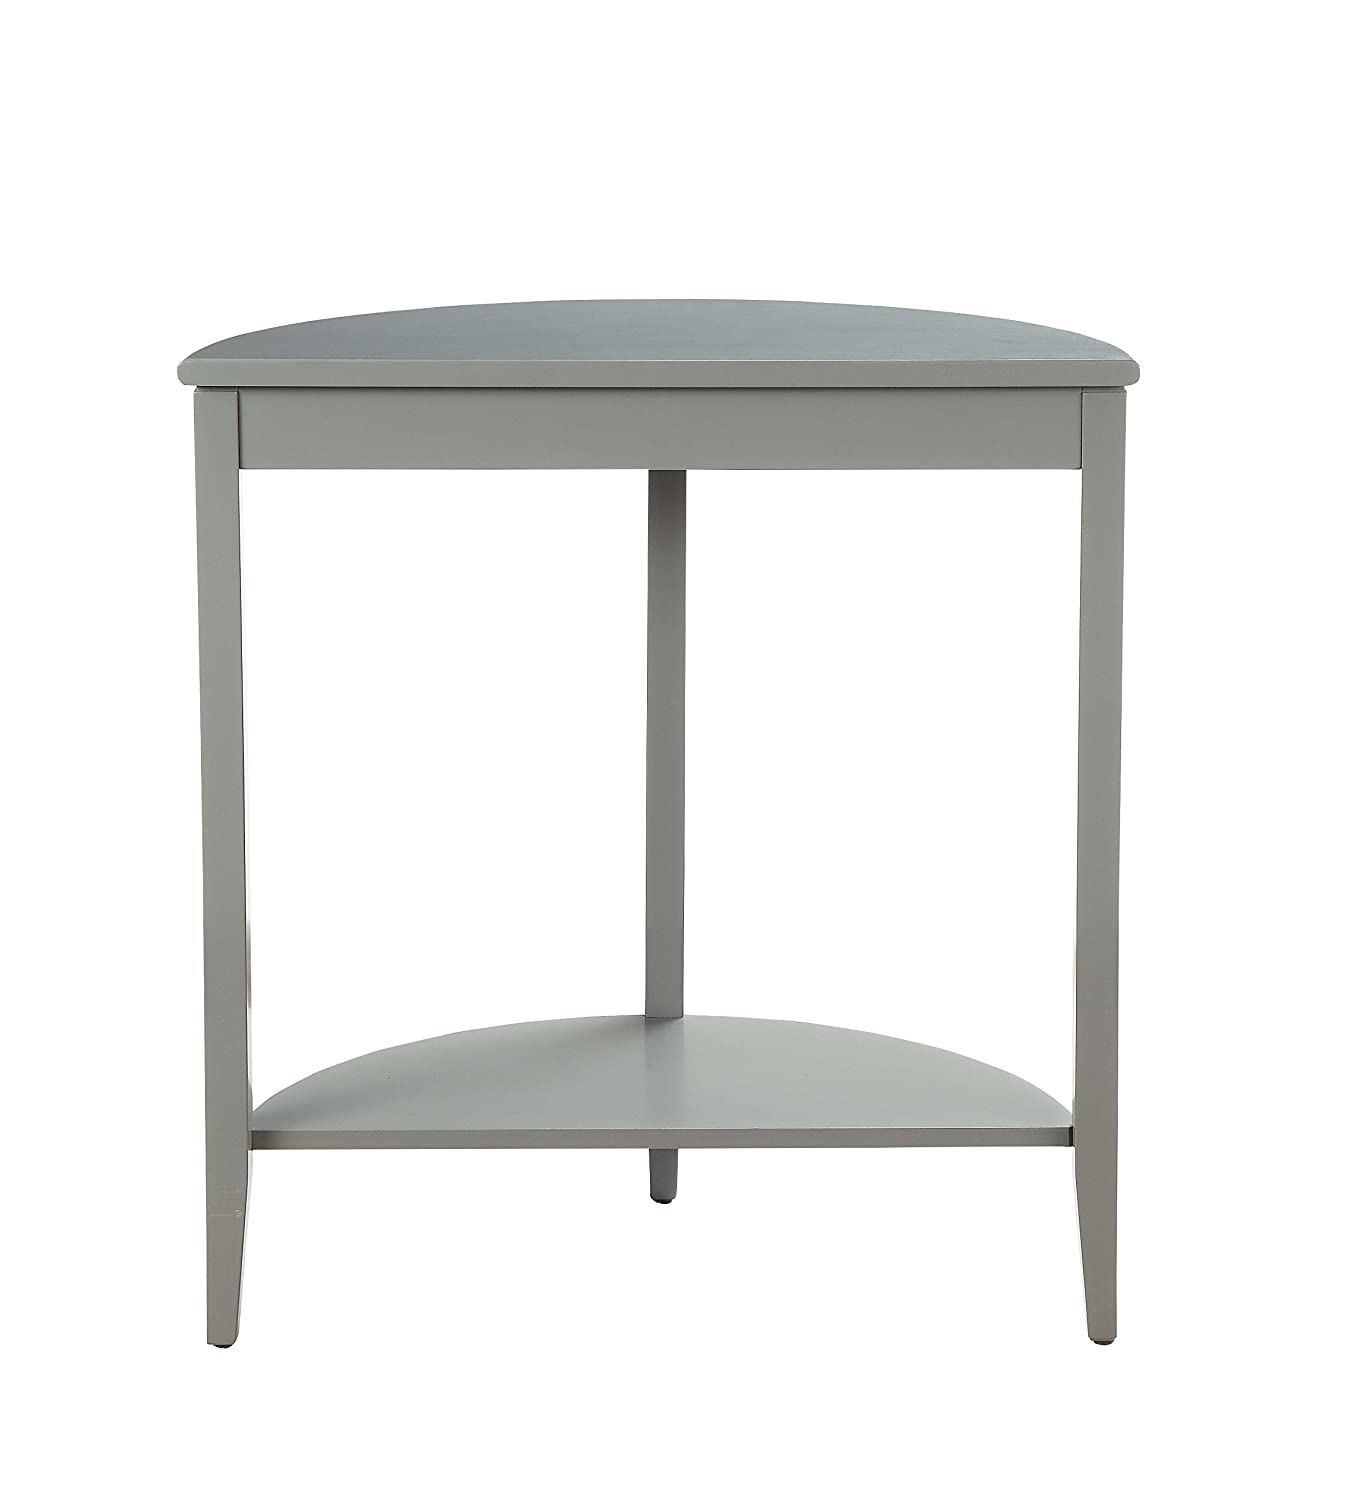 Amazon com acme furniture 90162 justino gray console table 1 size kitchen dining